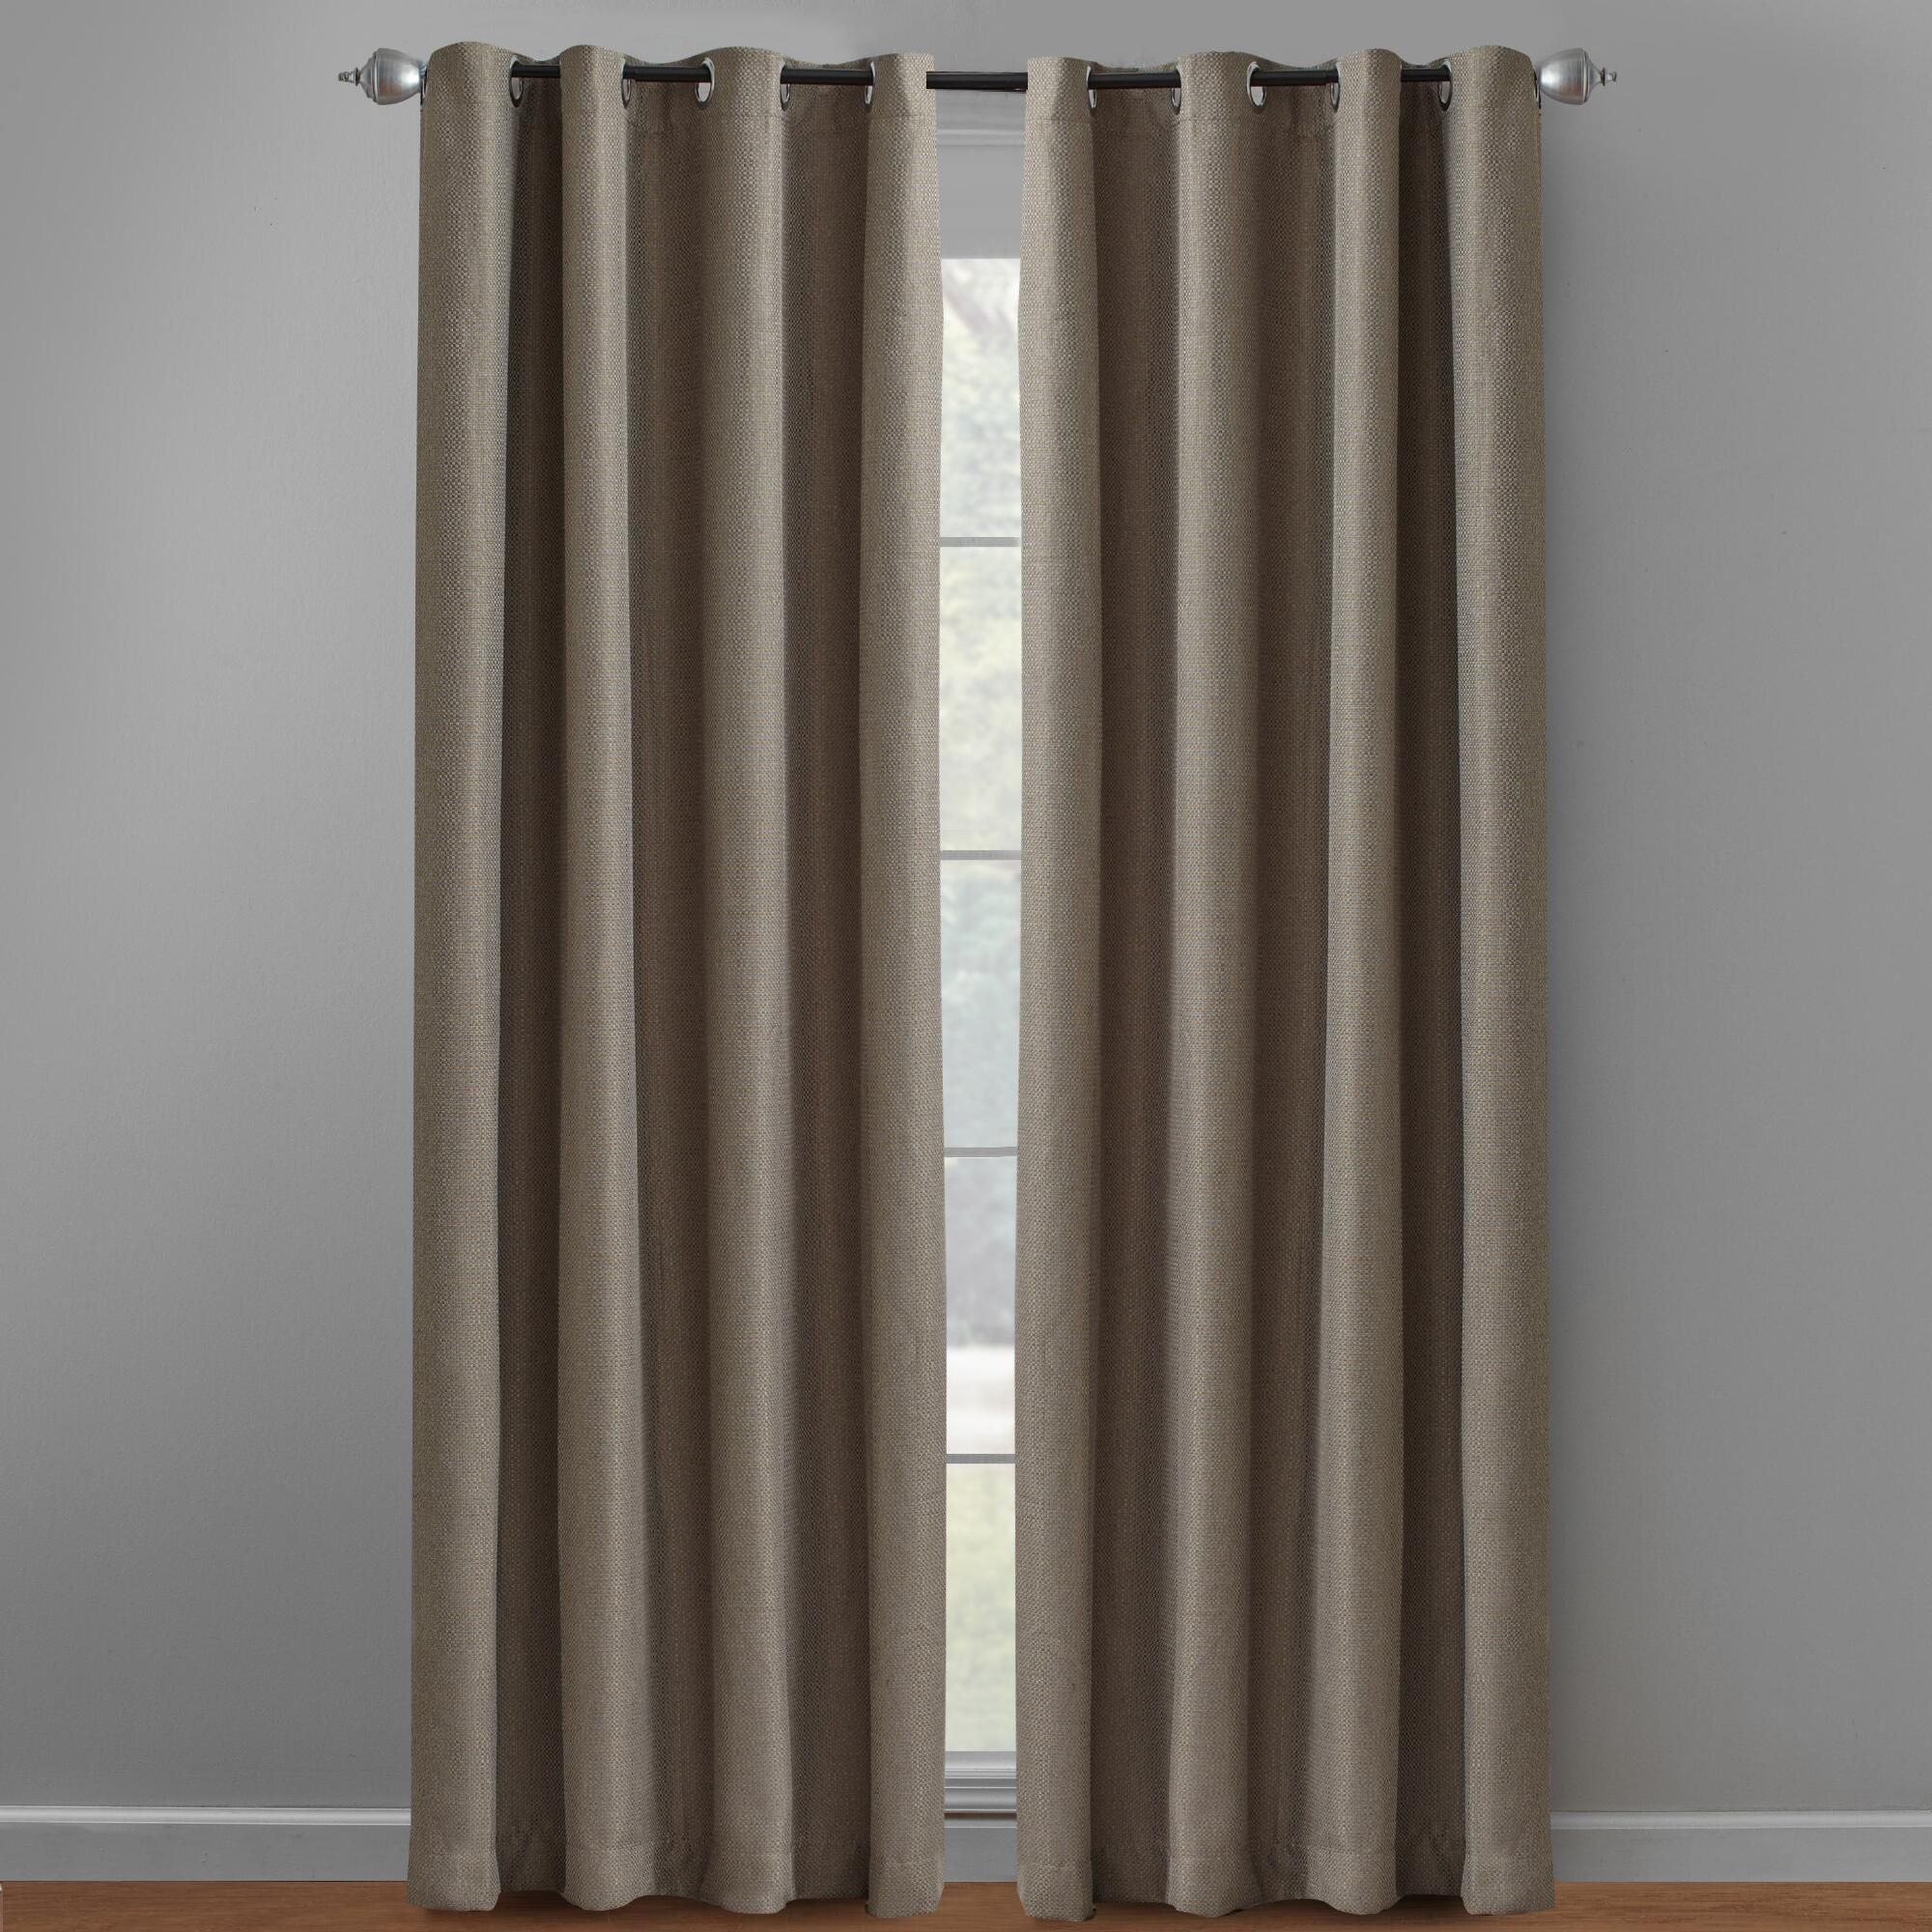 Dark Tan Eclipse Westbury Energy Saving Blackout Curtains Set Of 2 Living Room Redesign Curtains House Design